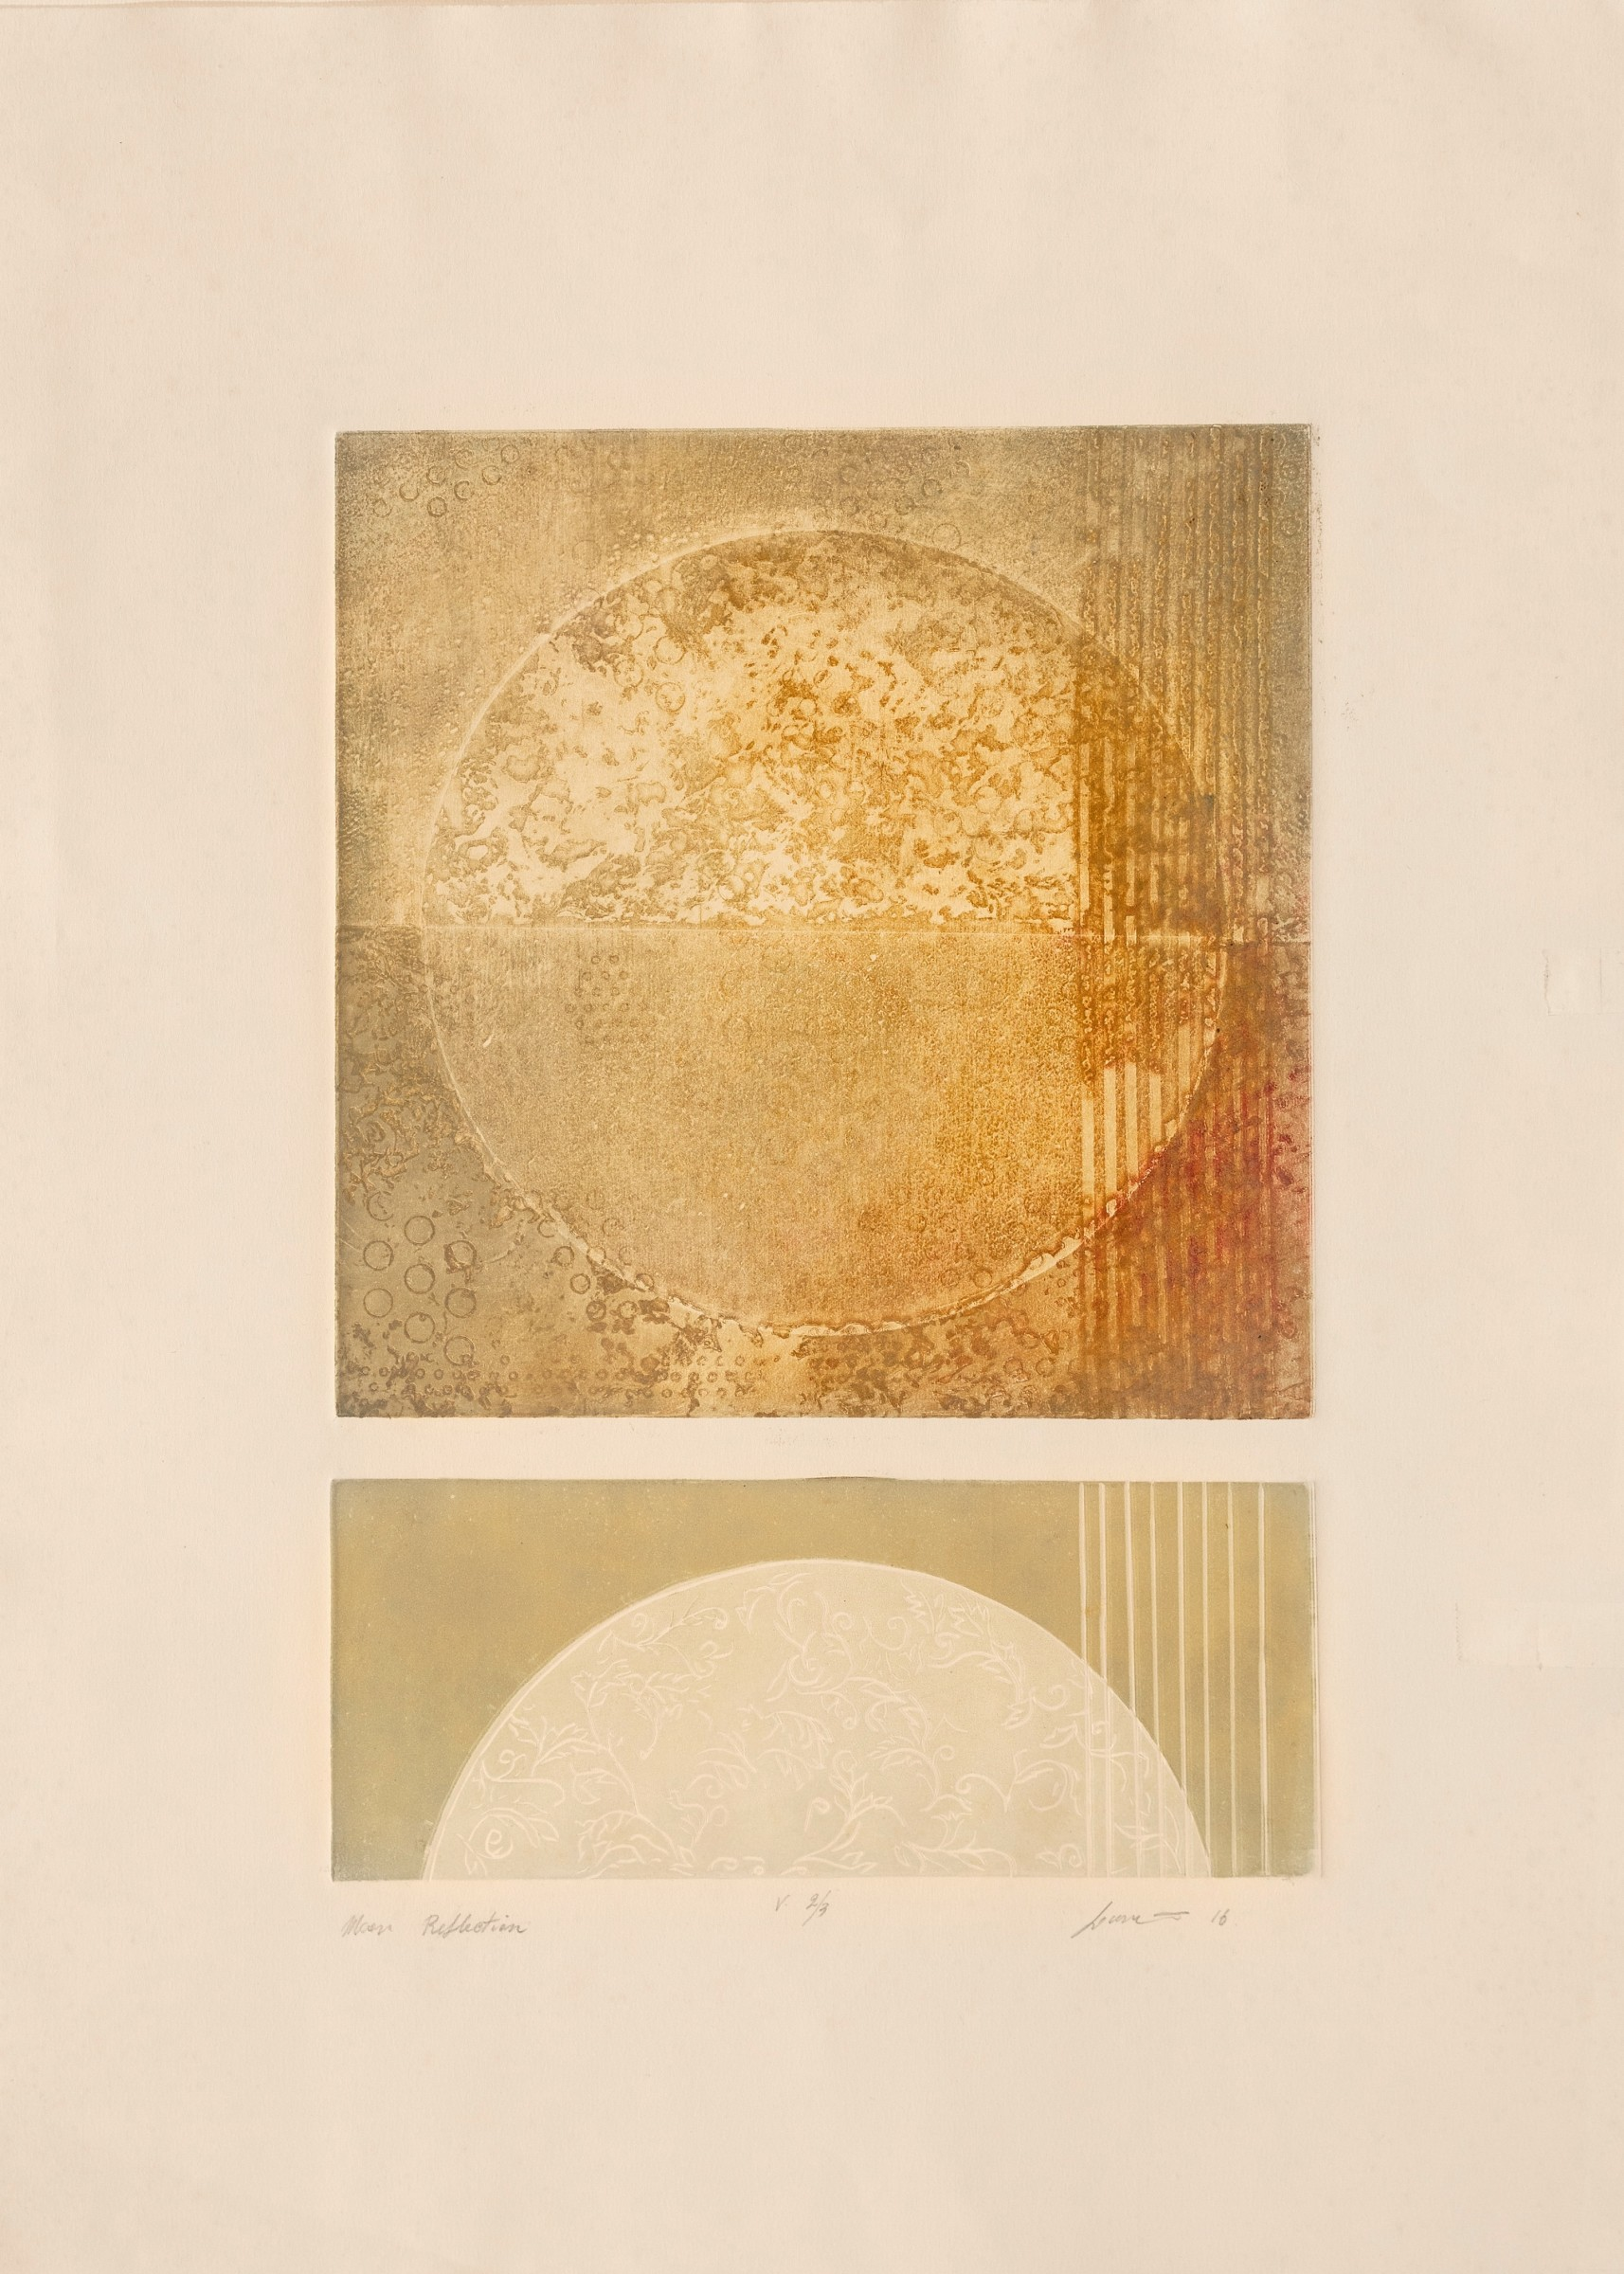 """<span class=""""link fancybox-details-link""""><a href=""""/exhibitions/17/works/image_standalone614/"""">View Detail Page</a></span><p><strong>Angela Luvera</strong></p><p>Moon Reflection</p><p>aquatint & mixed techniques, edition of 3</p><p>40 x 50cm</p><p>£1300 framed</p><p>£1100 unframed</p>"""